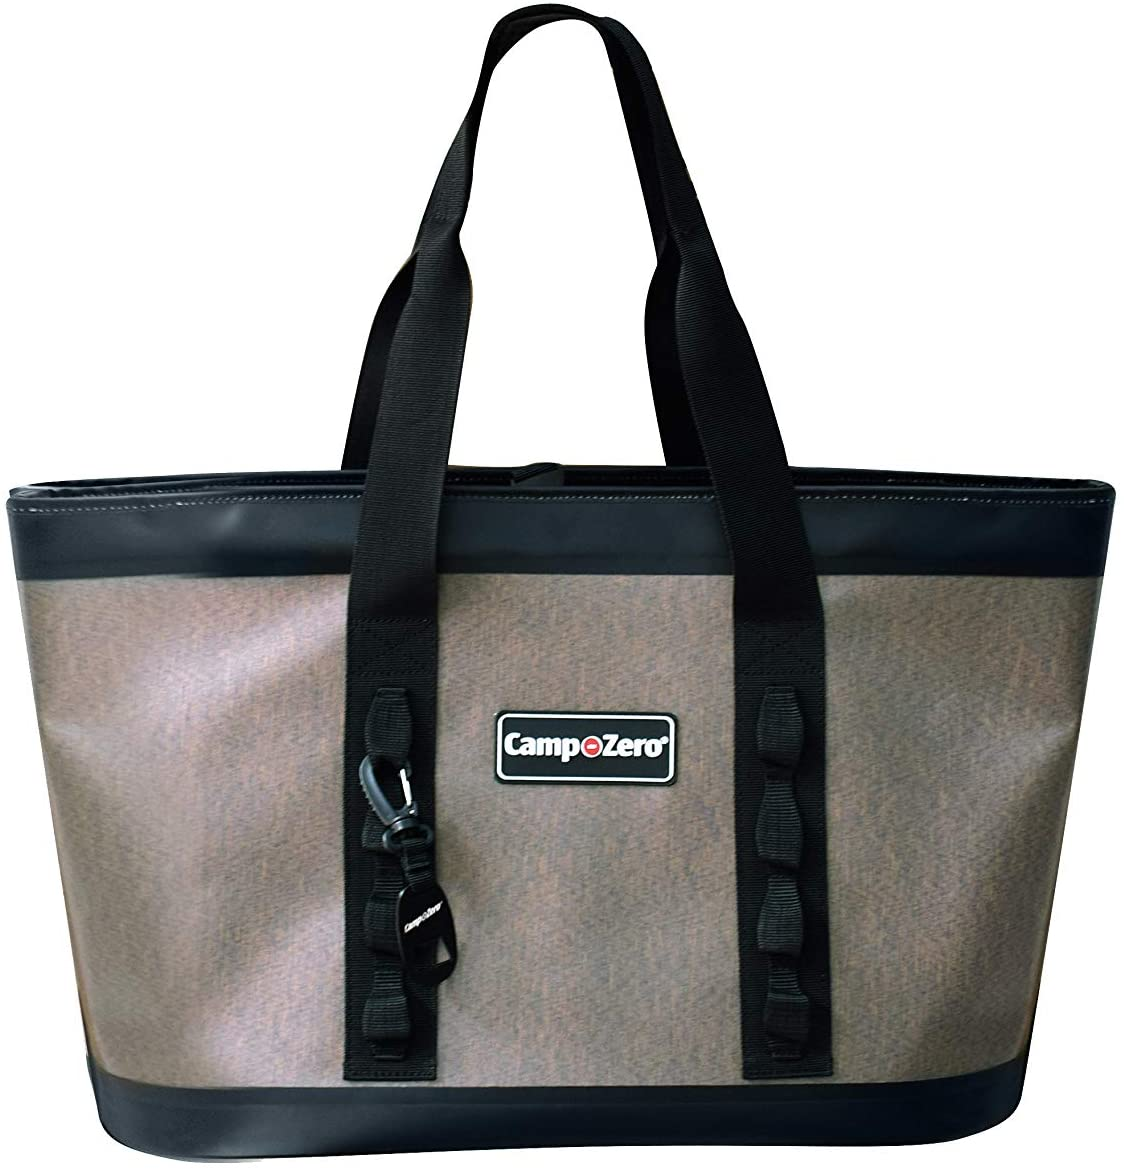 CAMP-ZERO All-Carry 40 Utility Beach, Boat and Everyday Tote Bag | Beige and Black